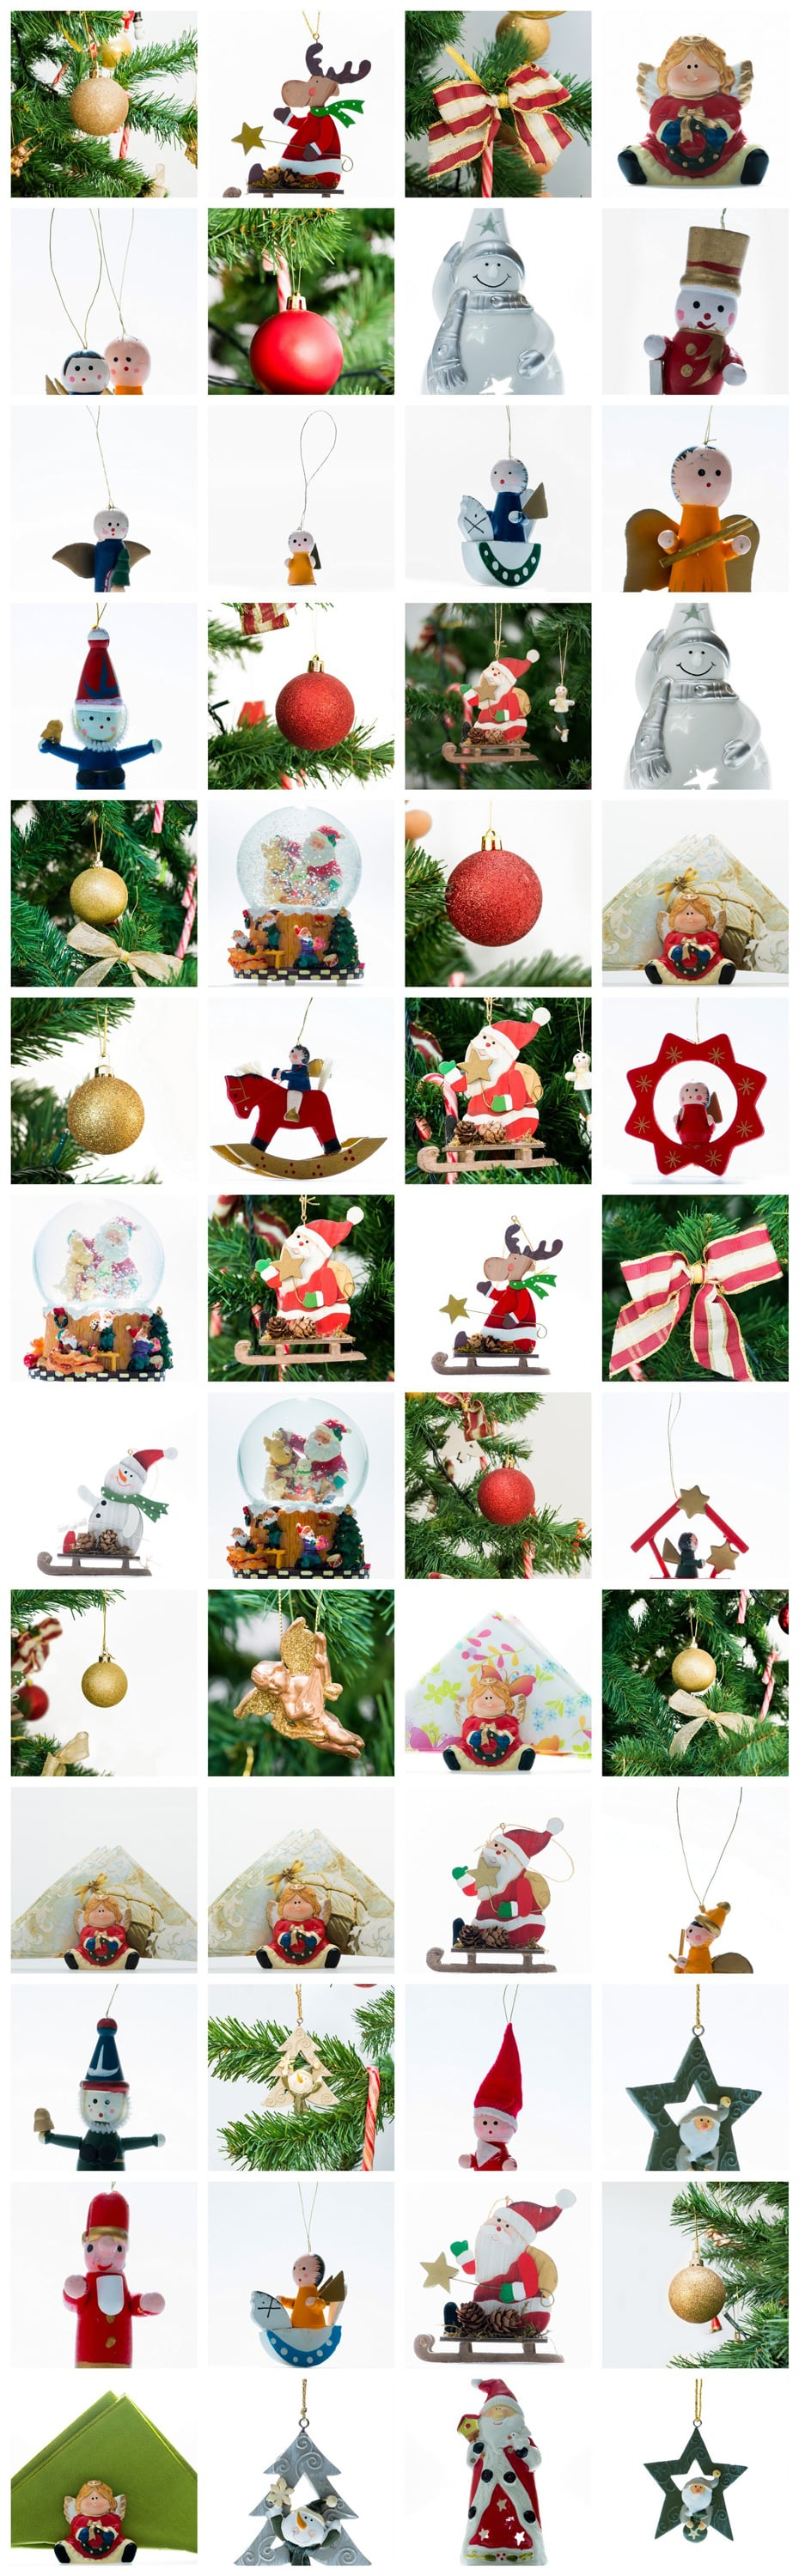 Get 150+ Christmas Stock Photos with Extended License for only $9